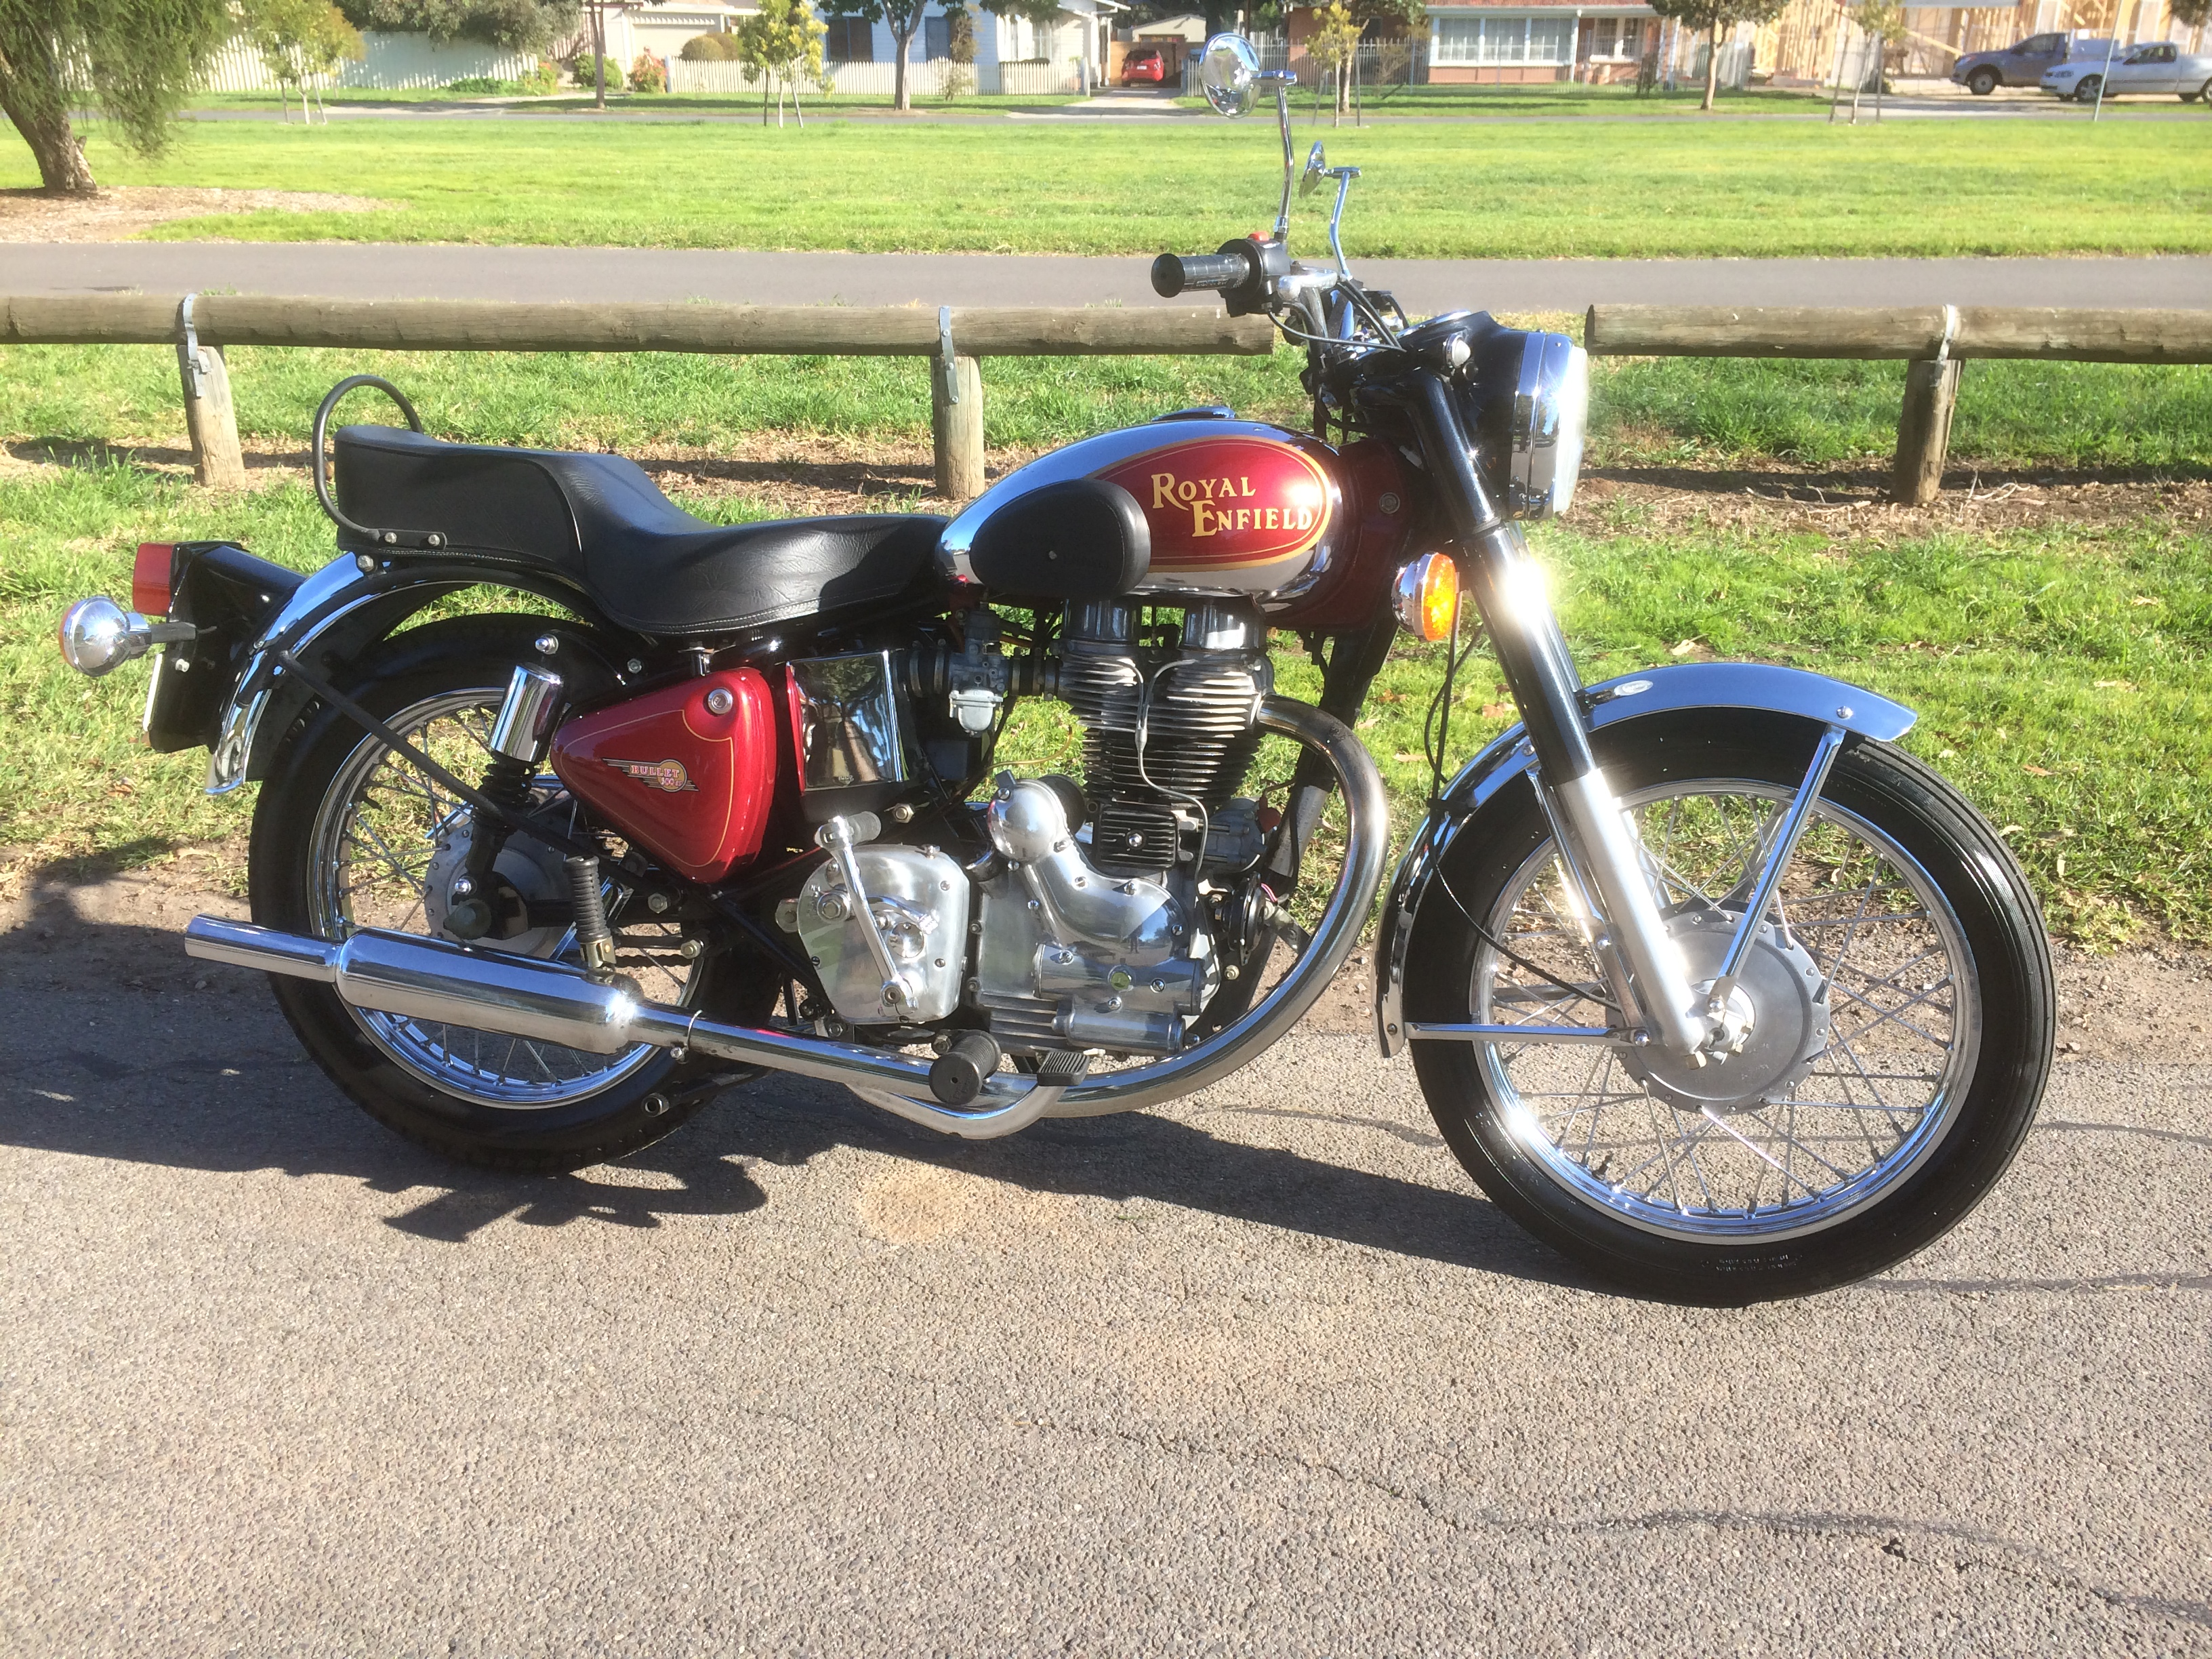 Royal Enfield Bullet 500 Army 2000 images #123237